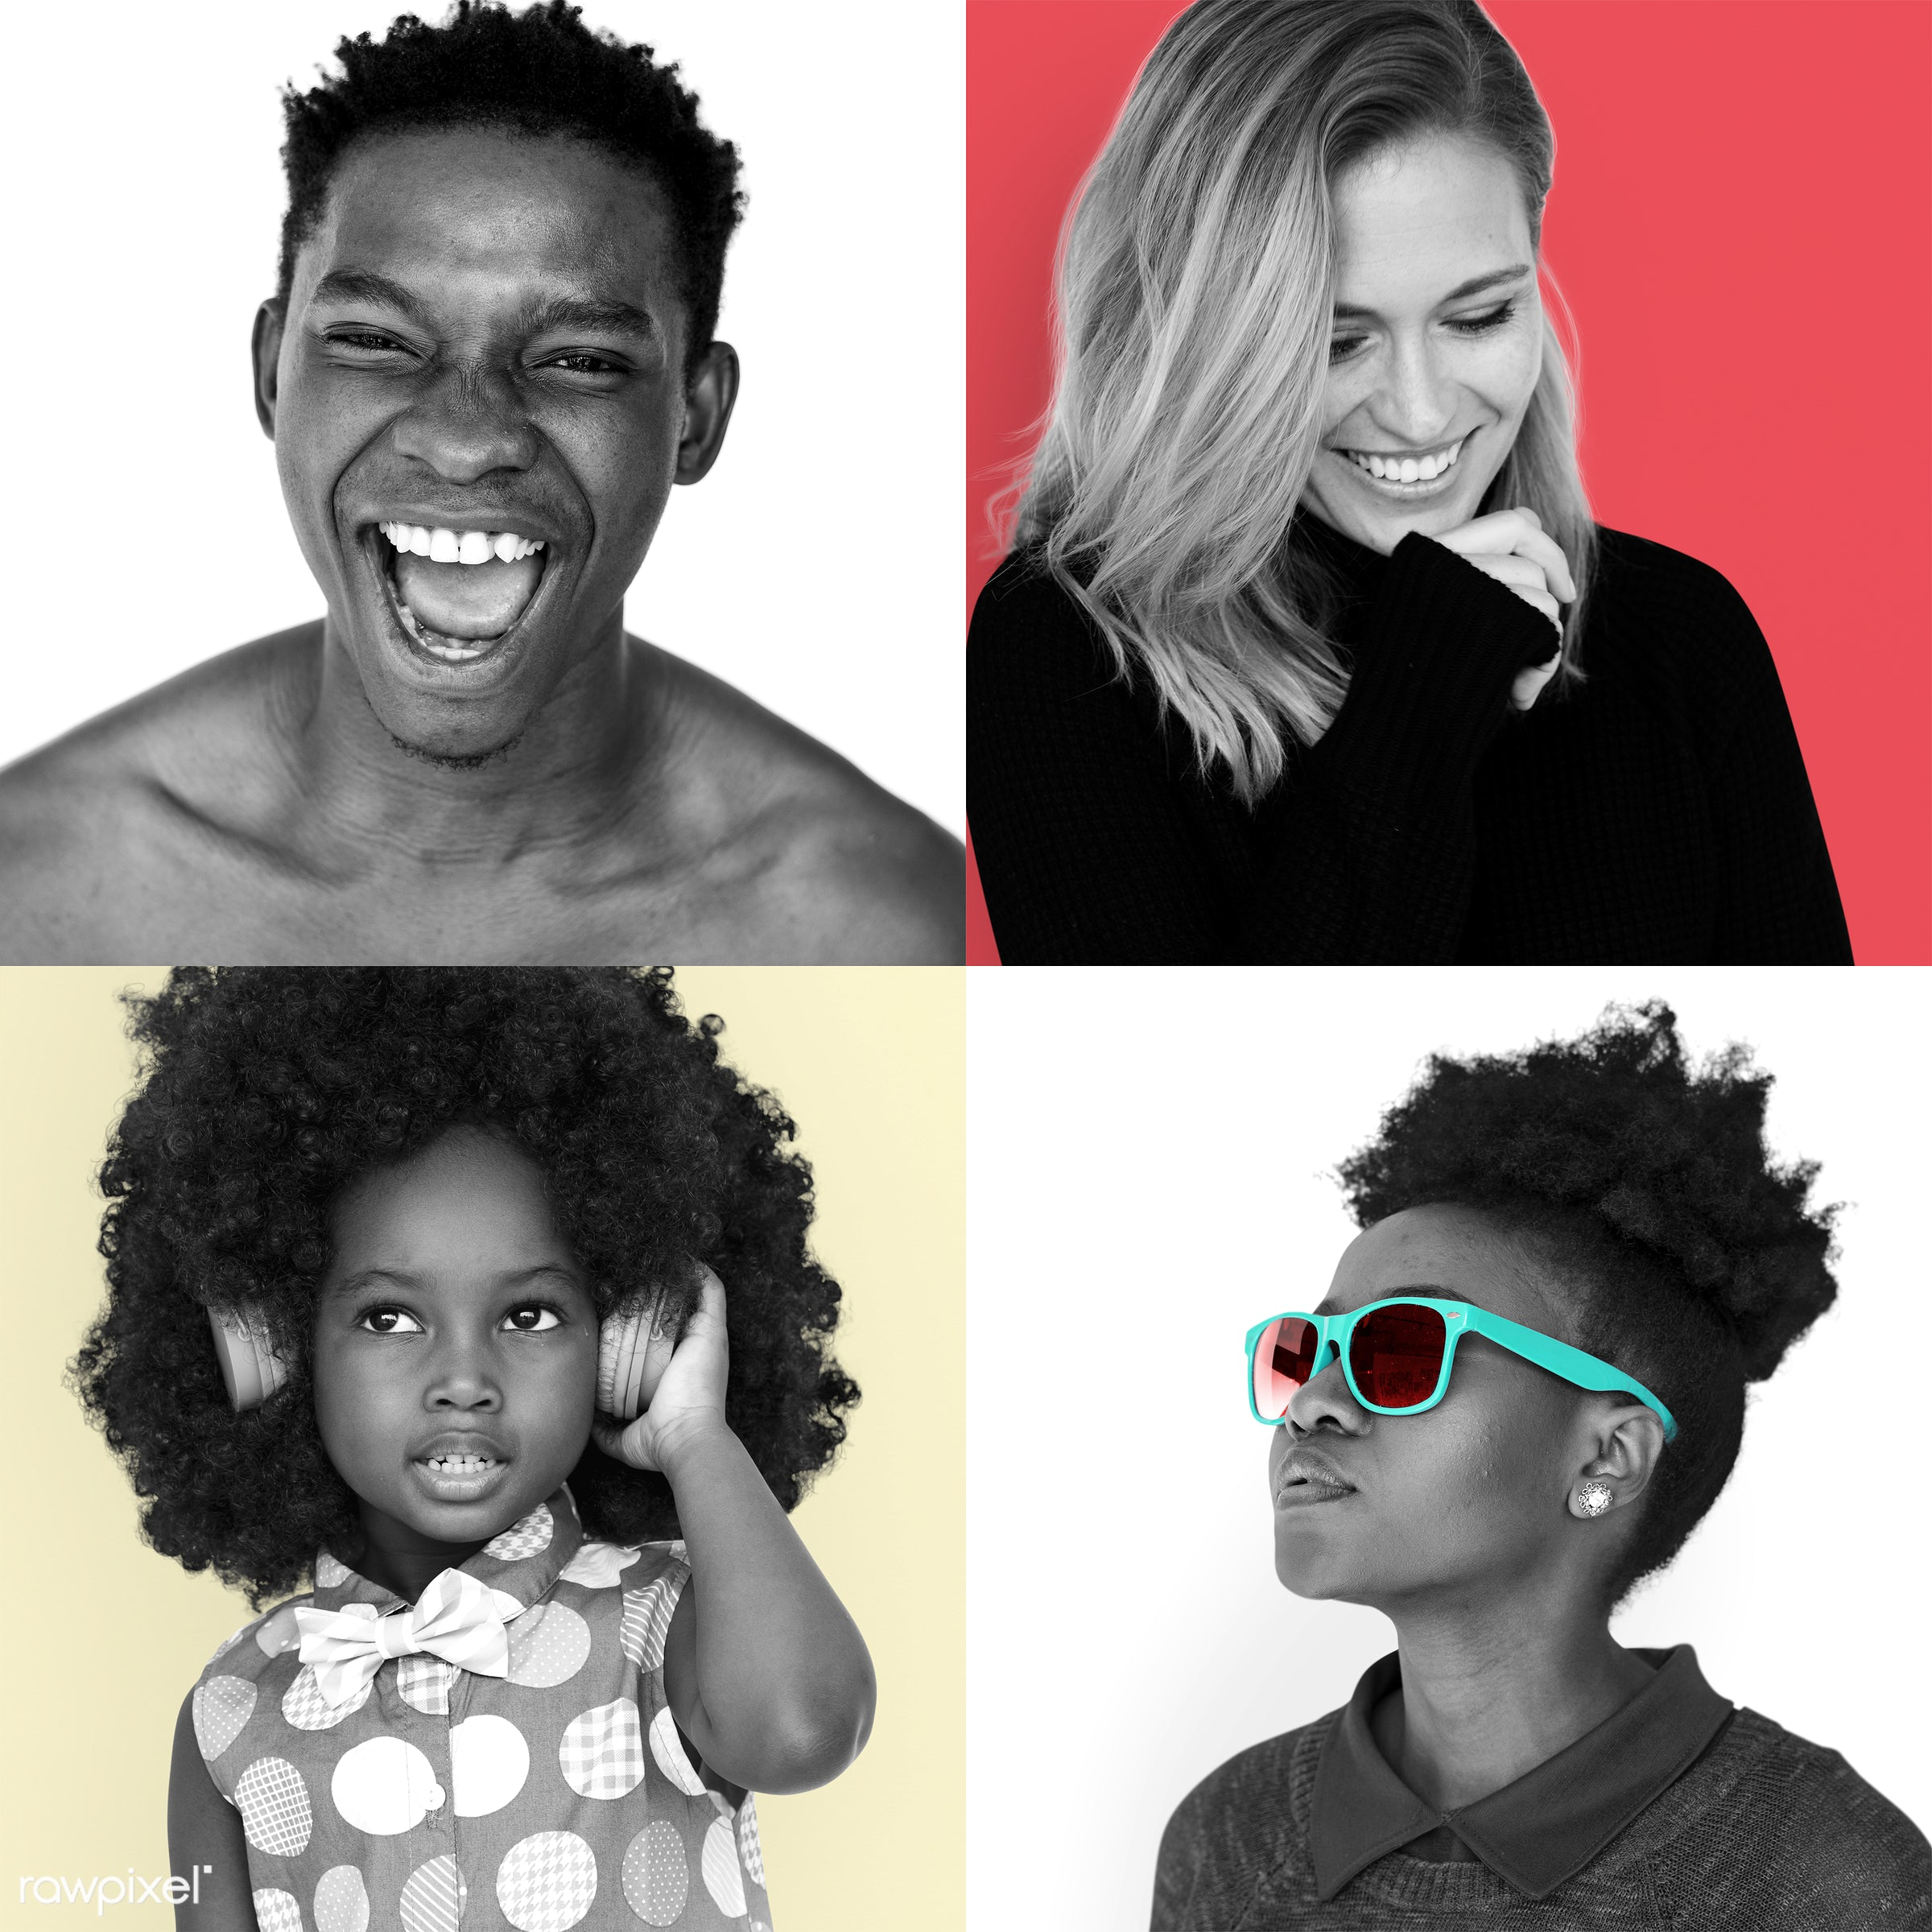 Portraits of diverse people - collage, adult, attractive, candid, casual, cheerful, chill, confidence, confident, diverse,...